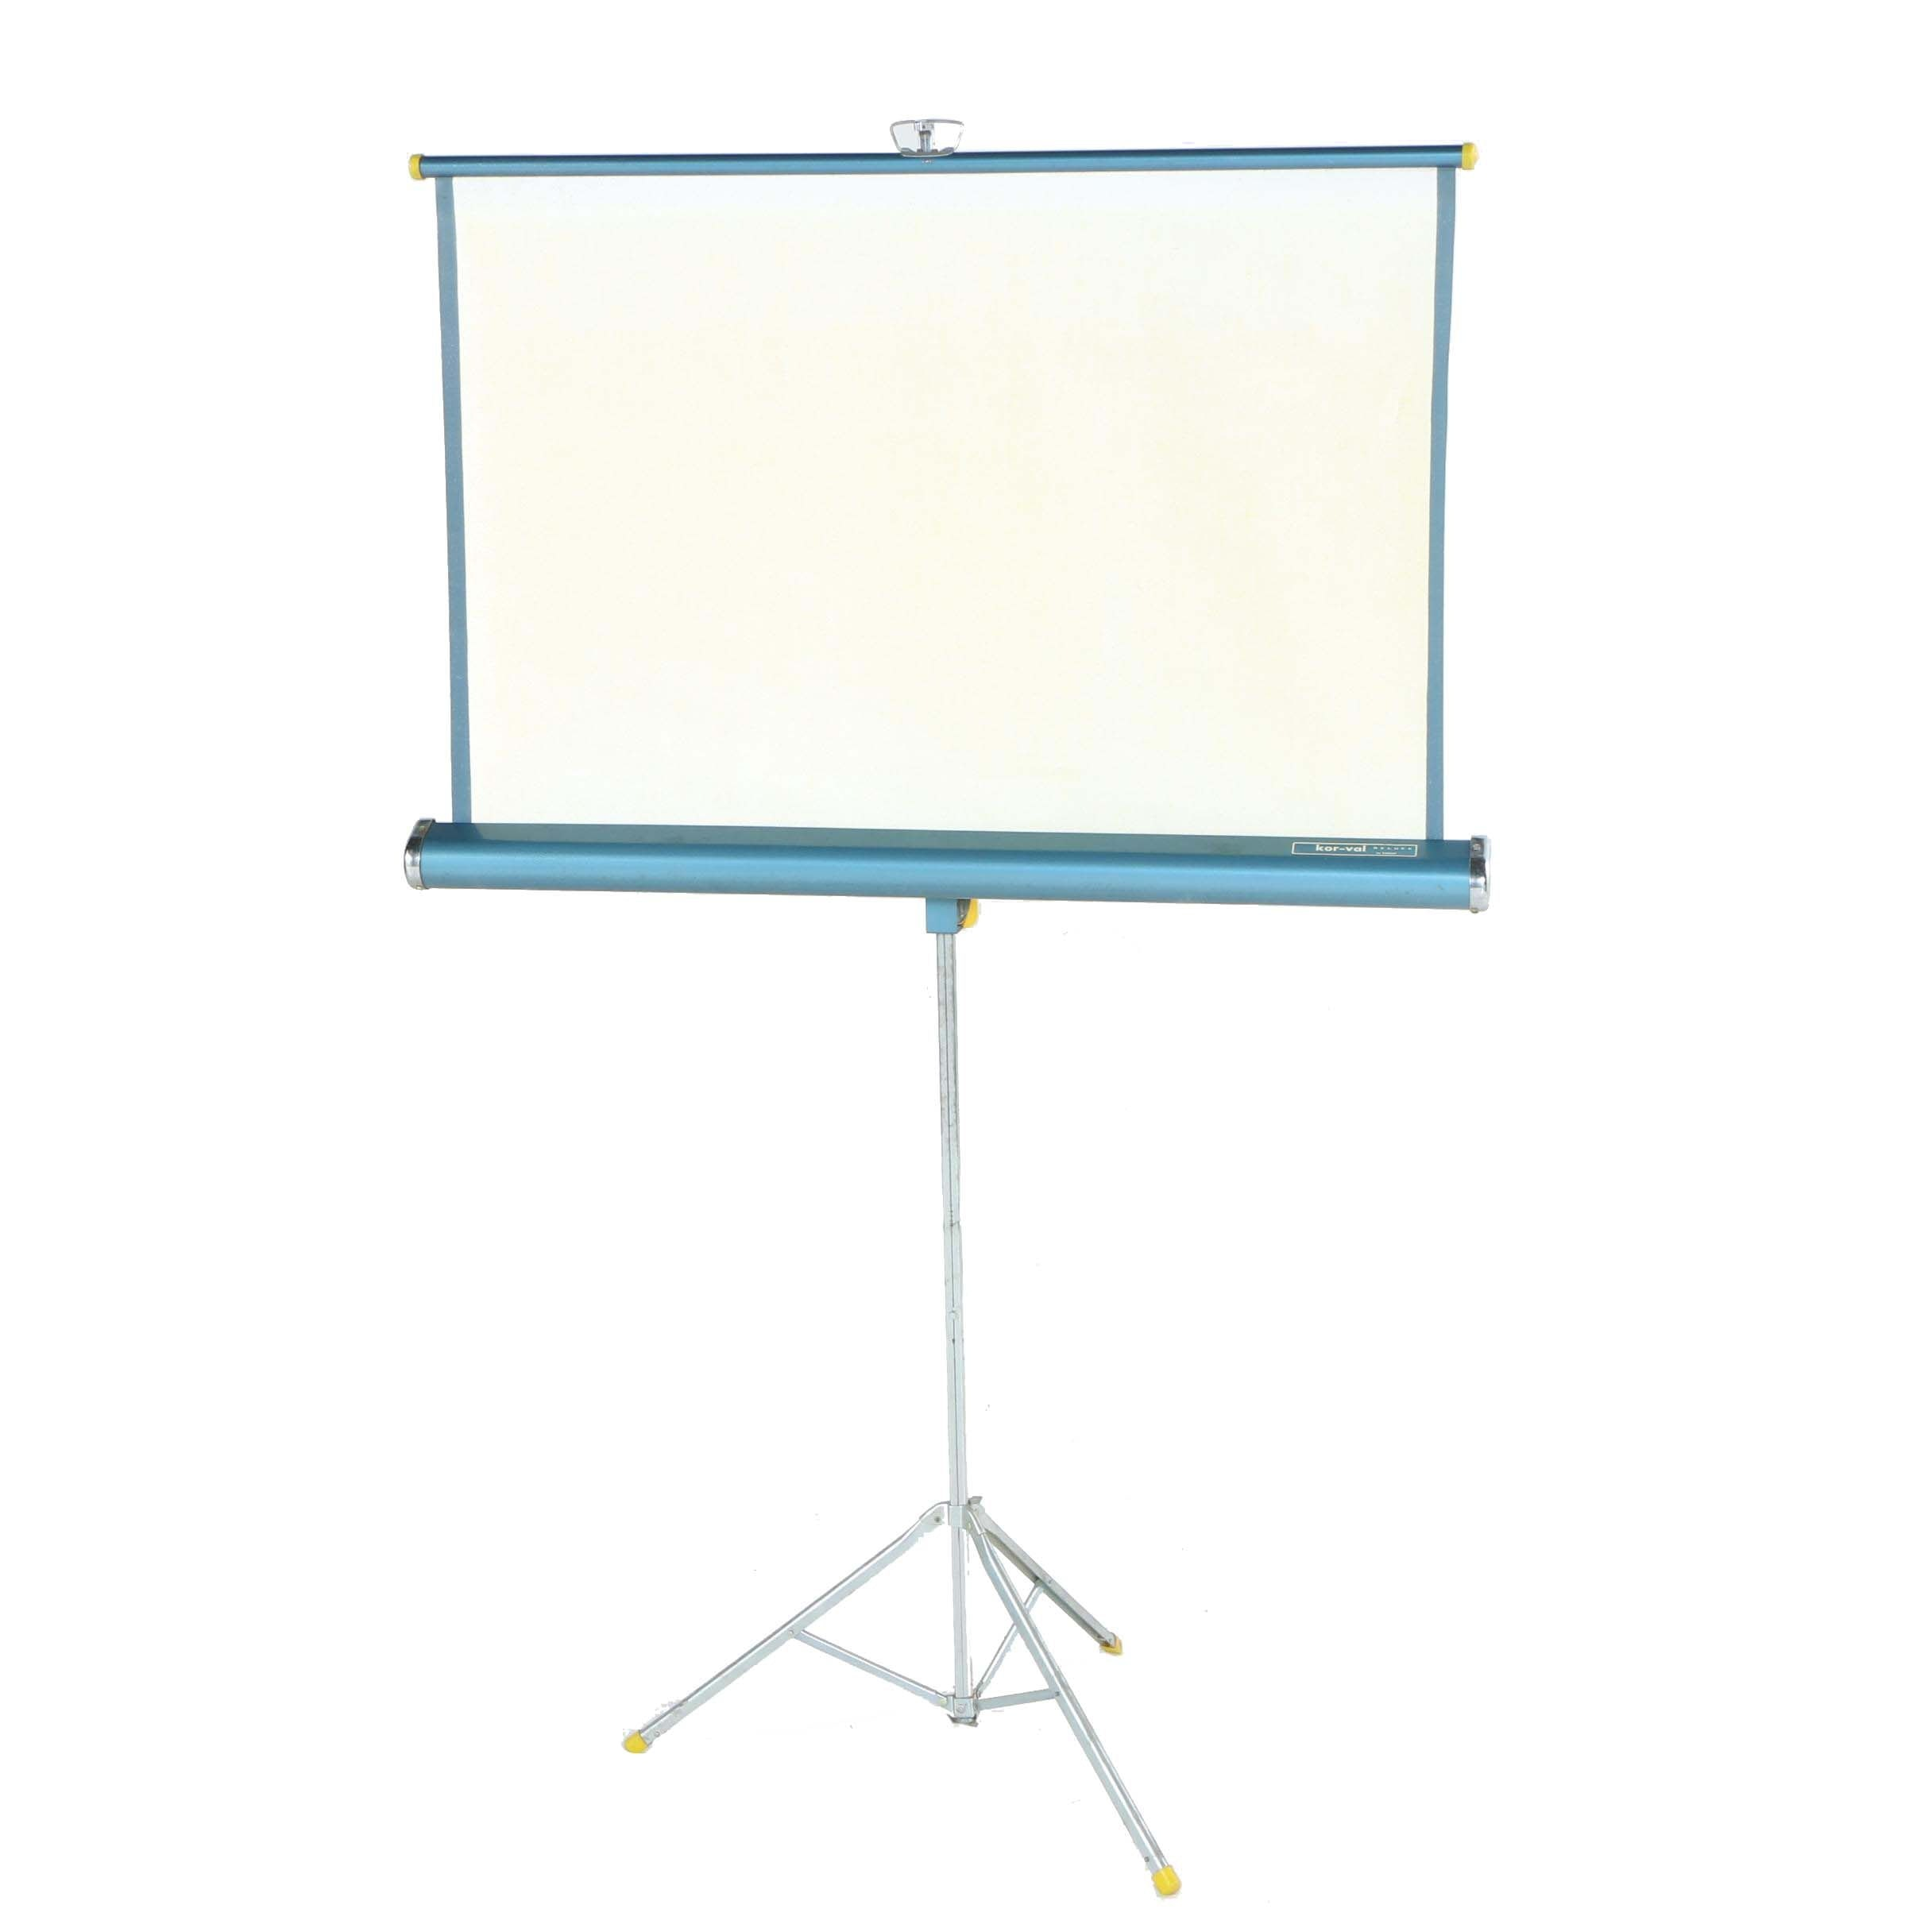 """Vintage Radiant """"Kor-Val Deluxe"""" Projection Screen"""